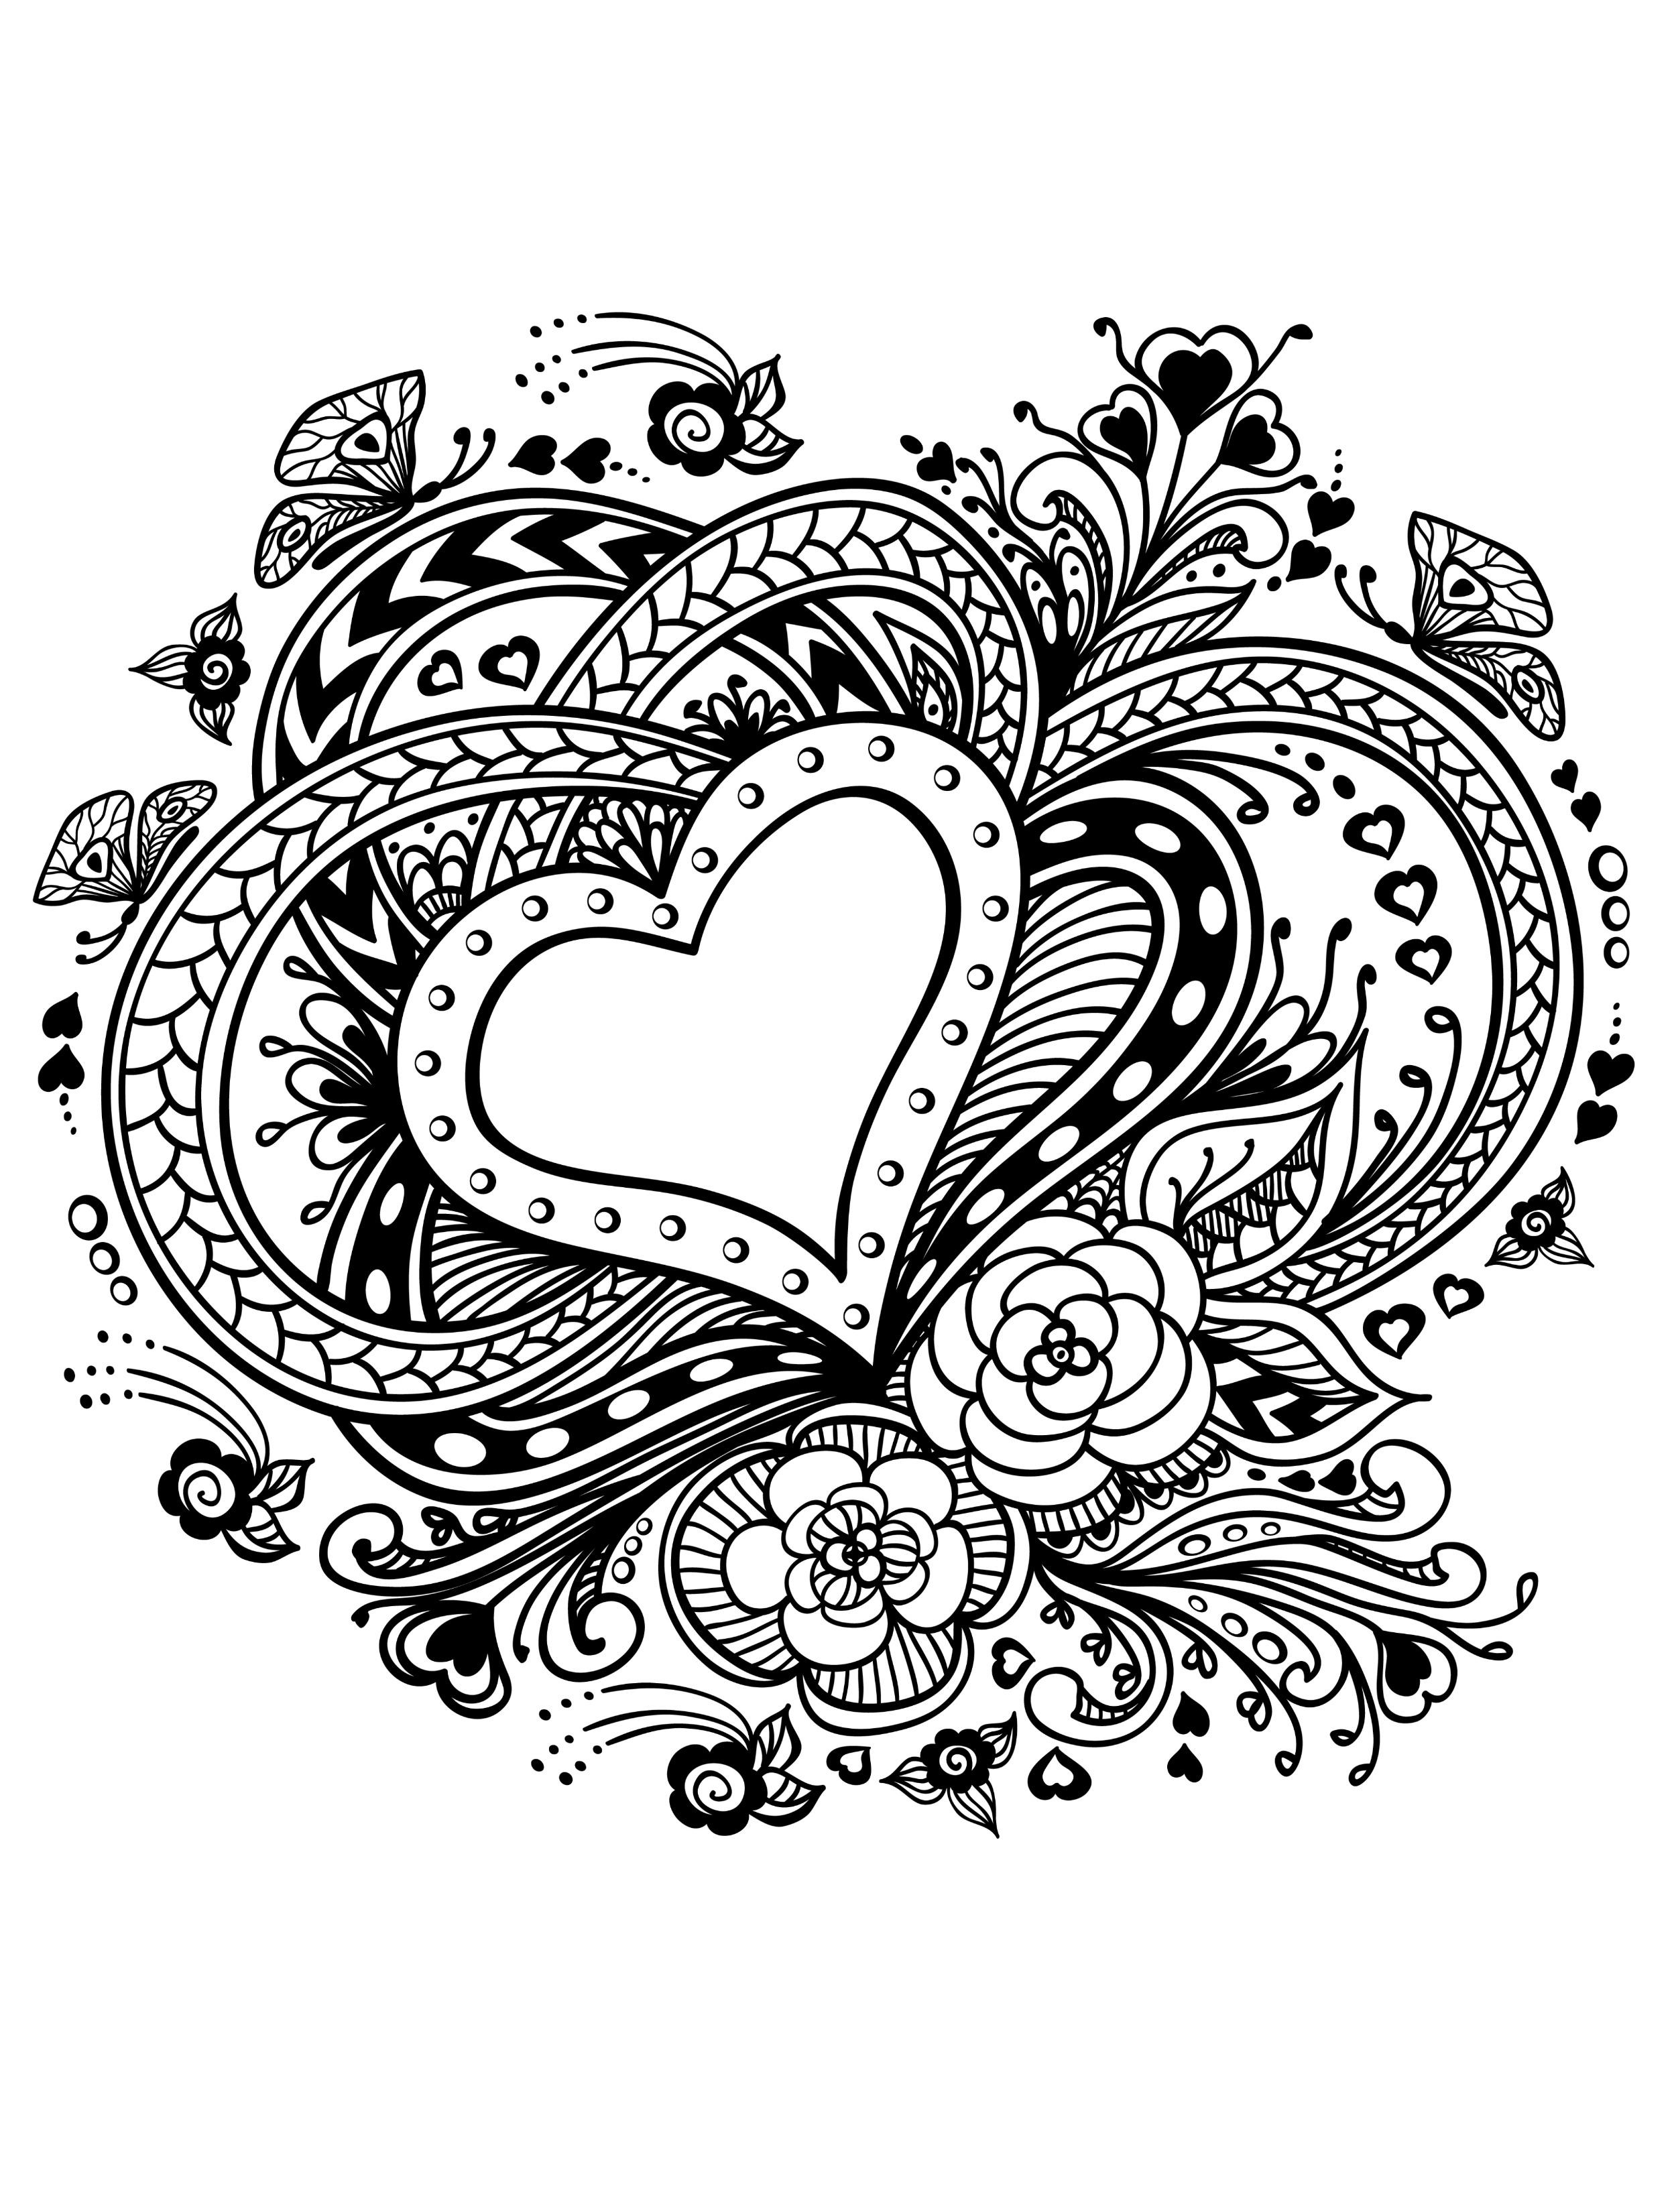 valentines coloring pages printable valentine coloring pages best coloring pages for kids valentines coloring printable pages